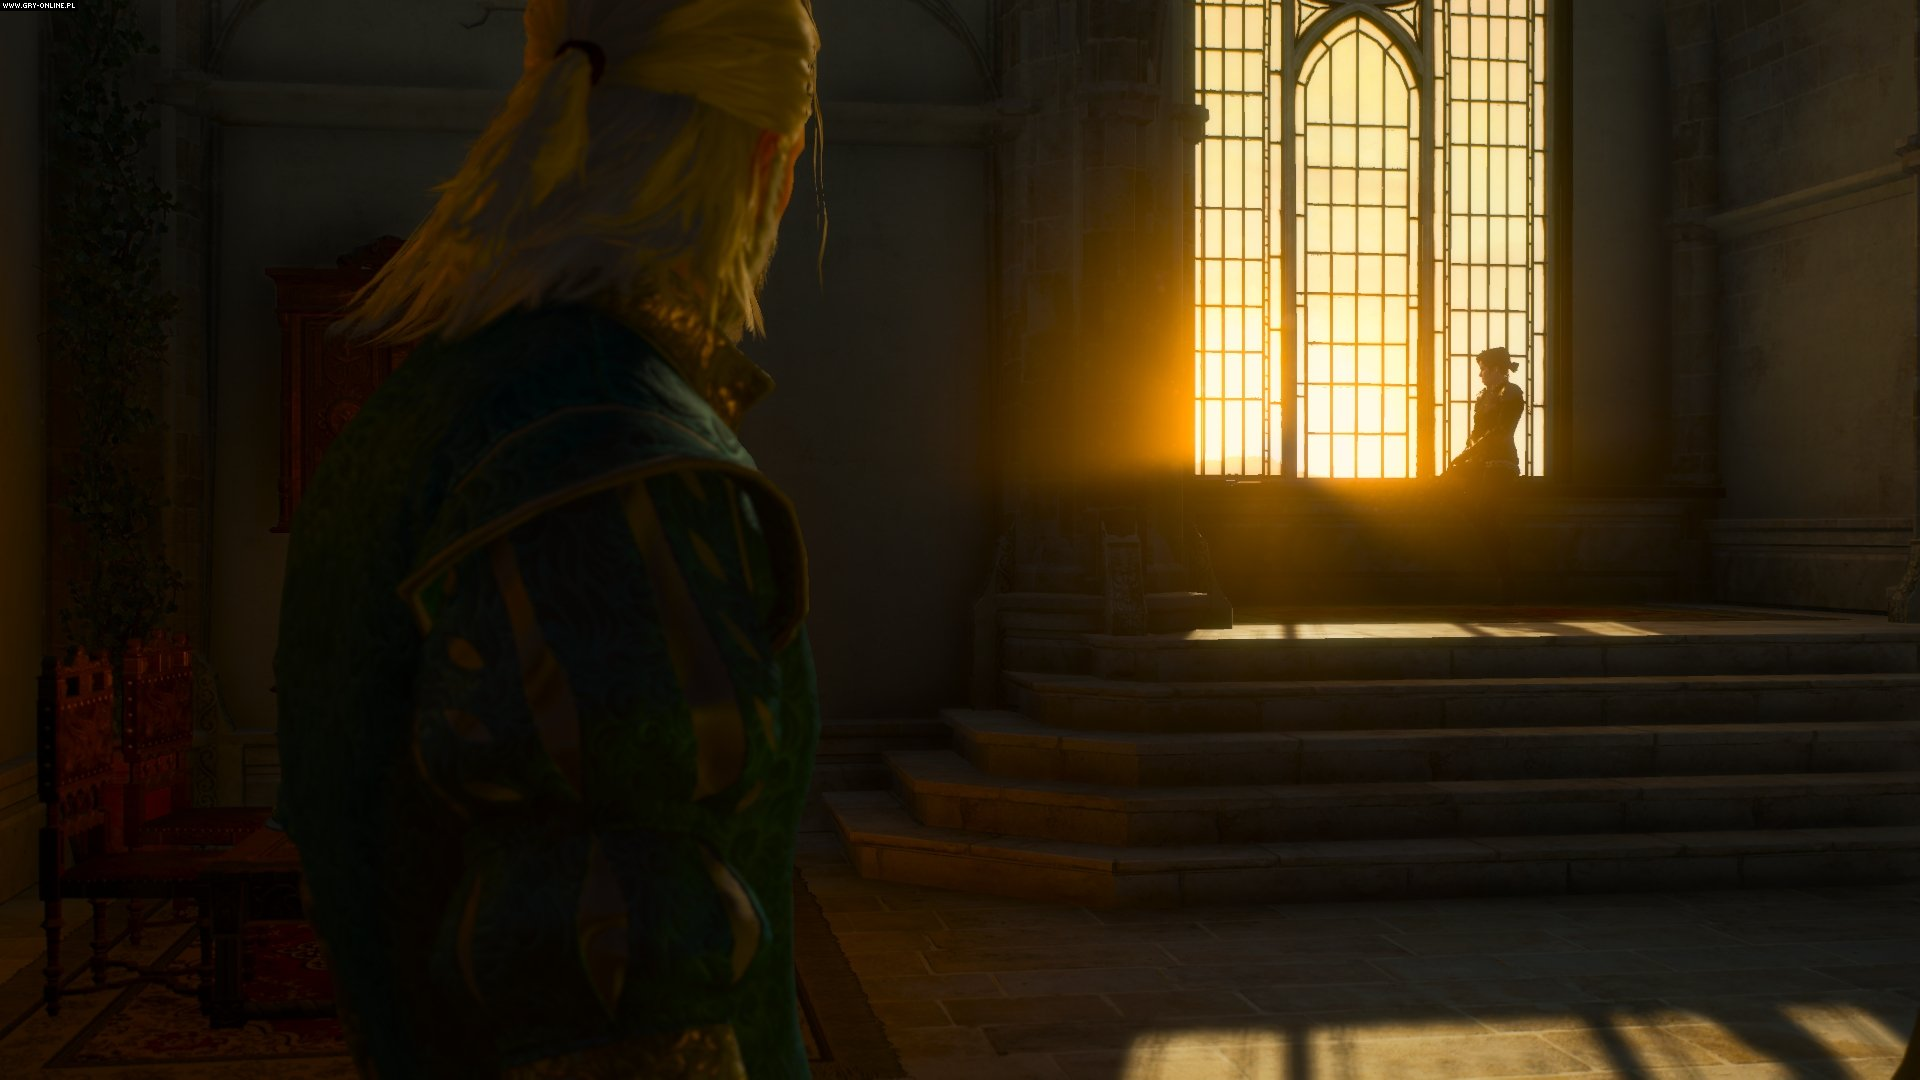 The Witcher 3: Blood and Wine PC, XONE, PS4 Games Image 7/47, CD Projekt RED, Bandai Namco Entertainment